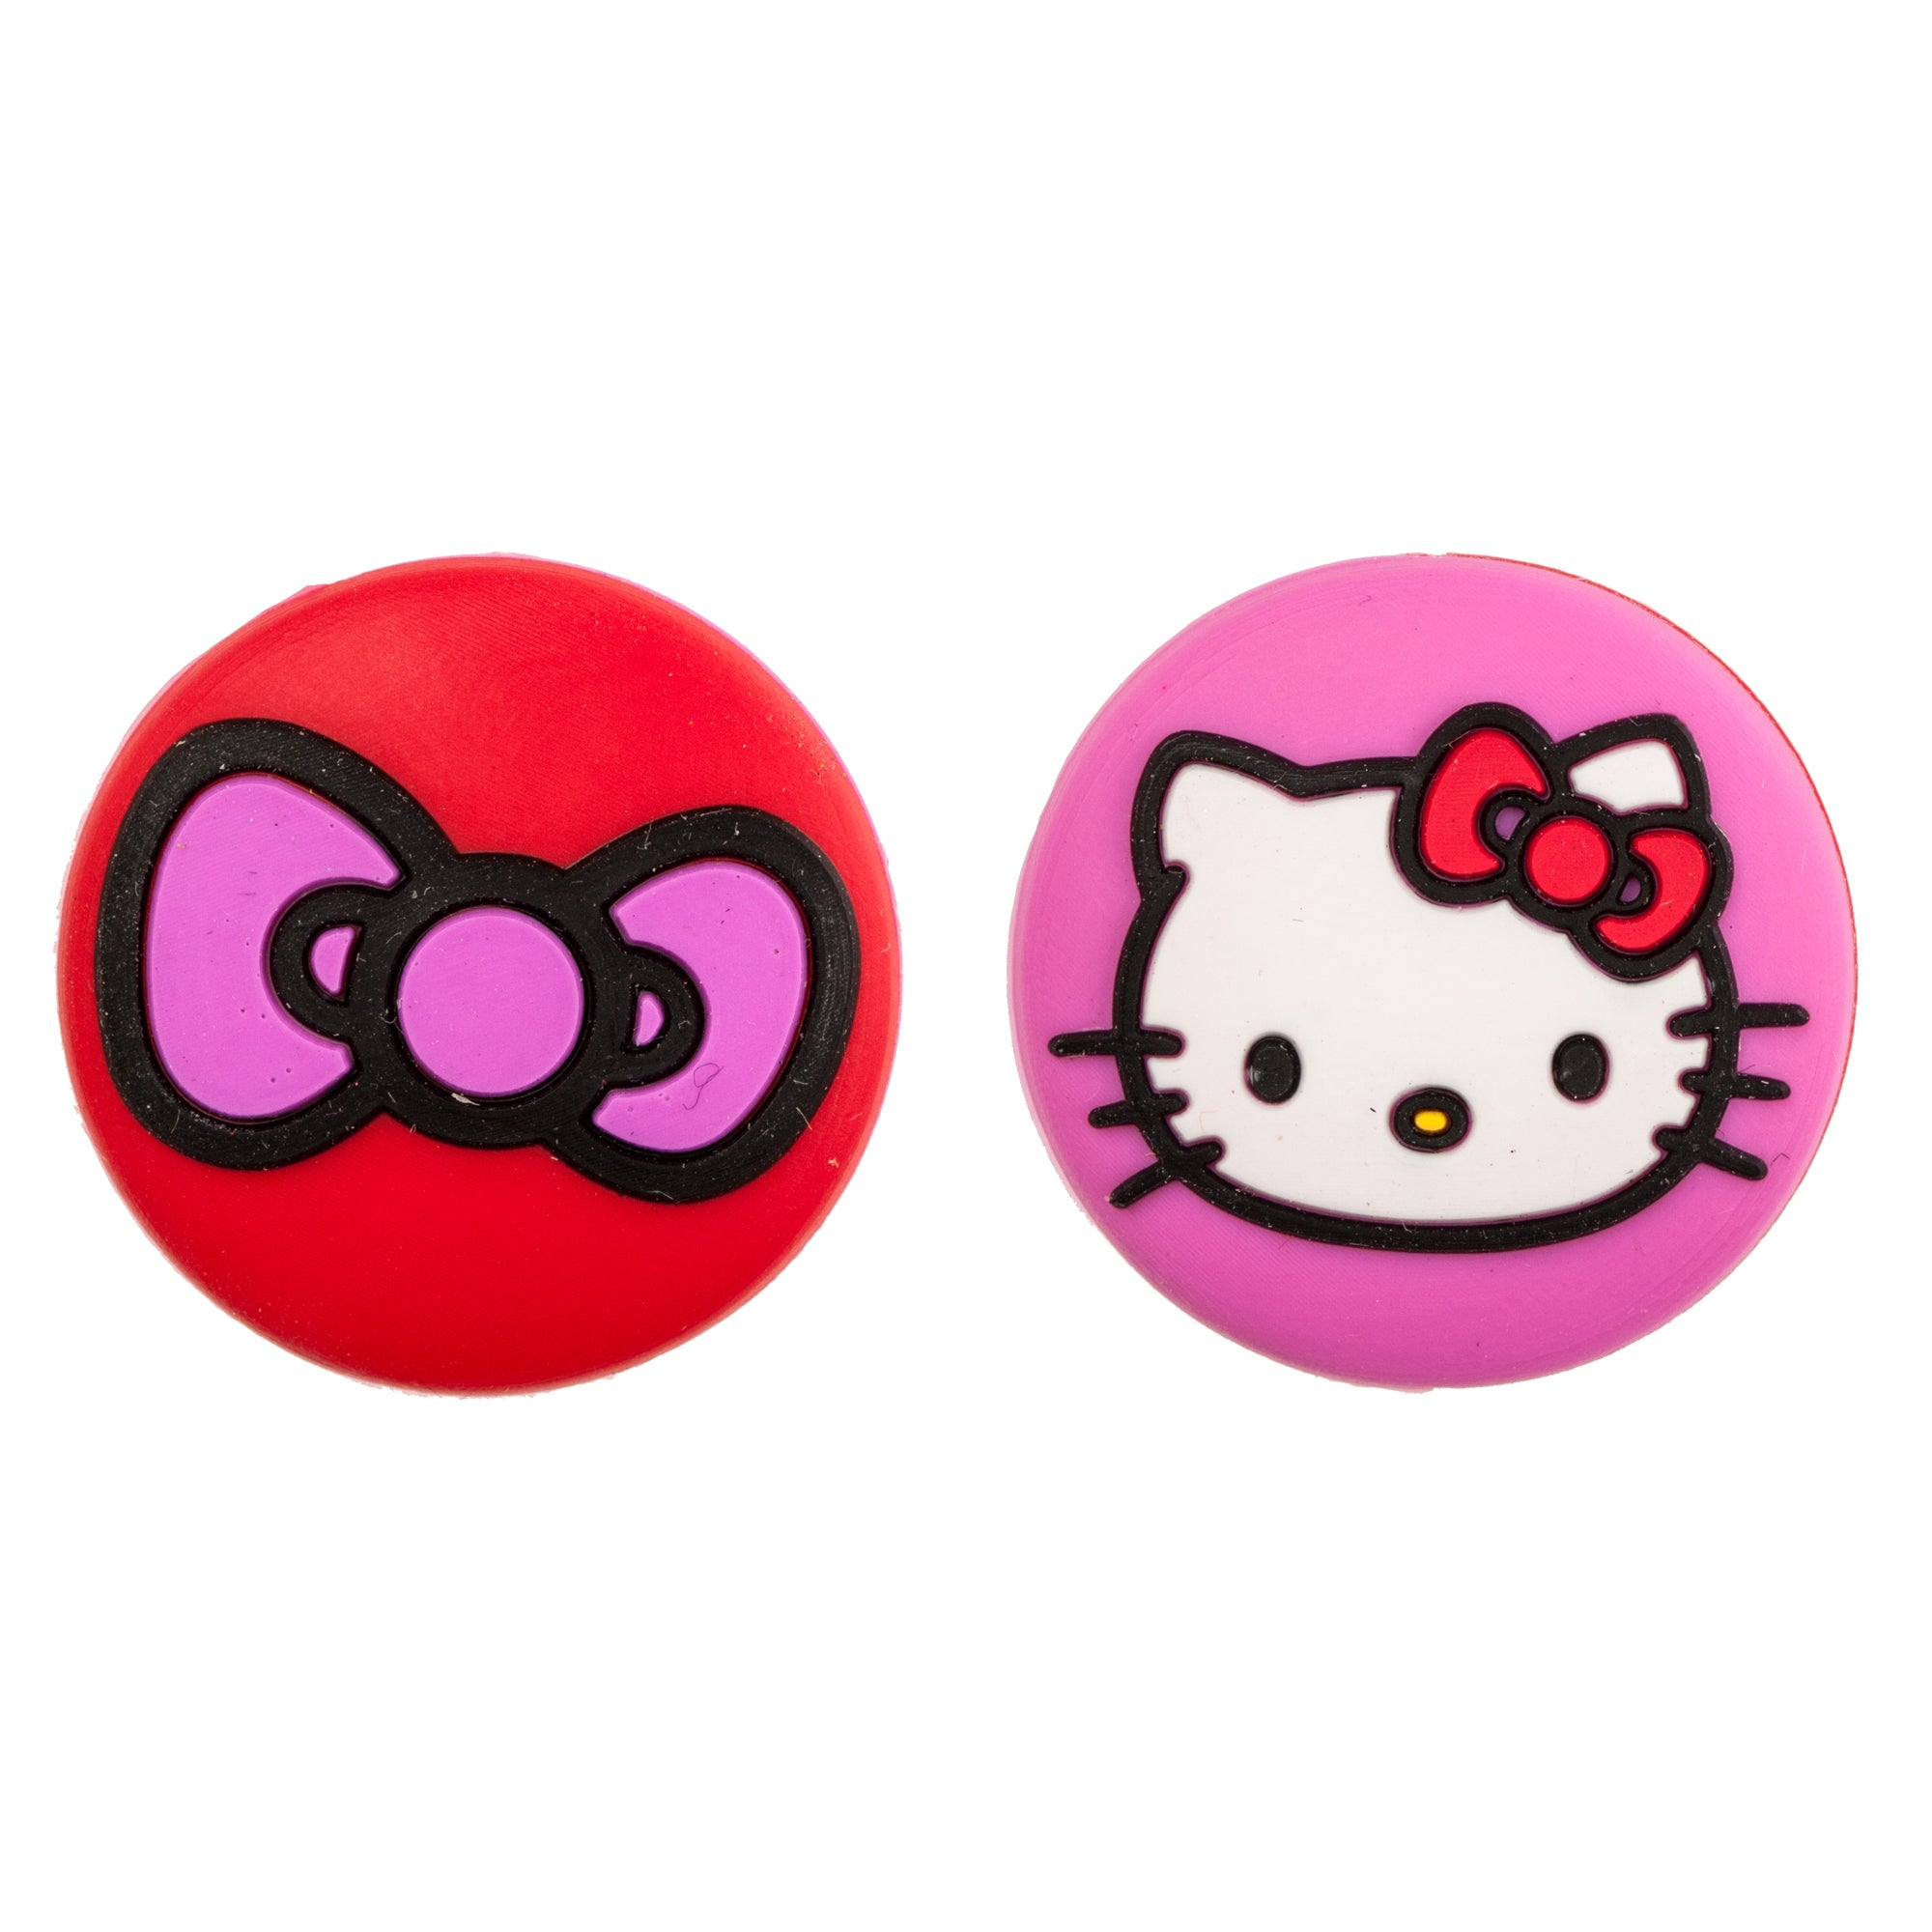 Hello Kitty Face and Bow Vibration Tennis Dampeners Two Pack at Sears.com